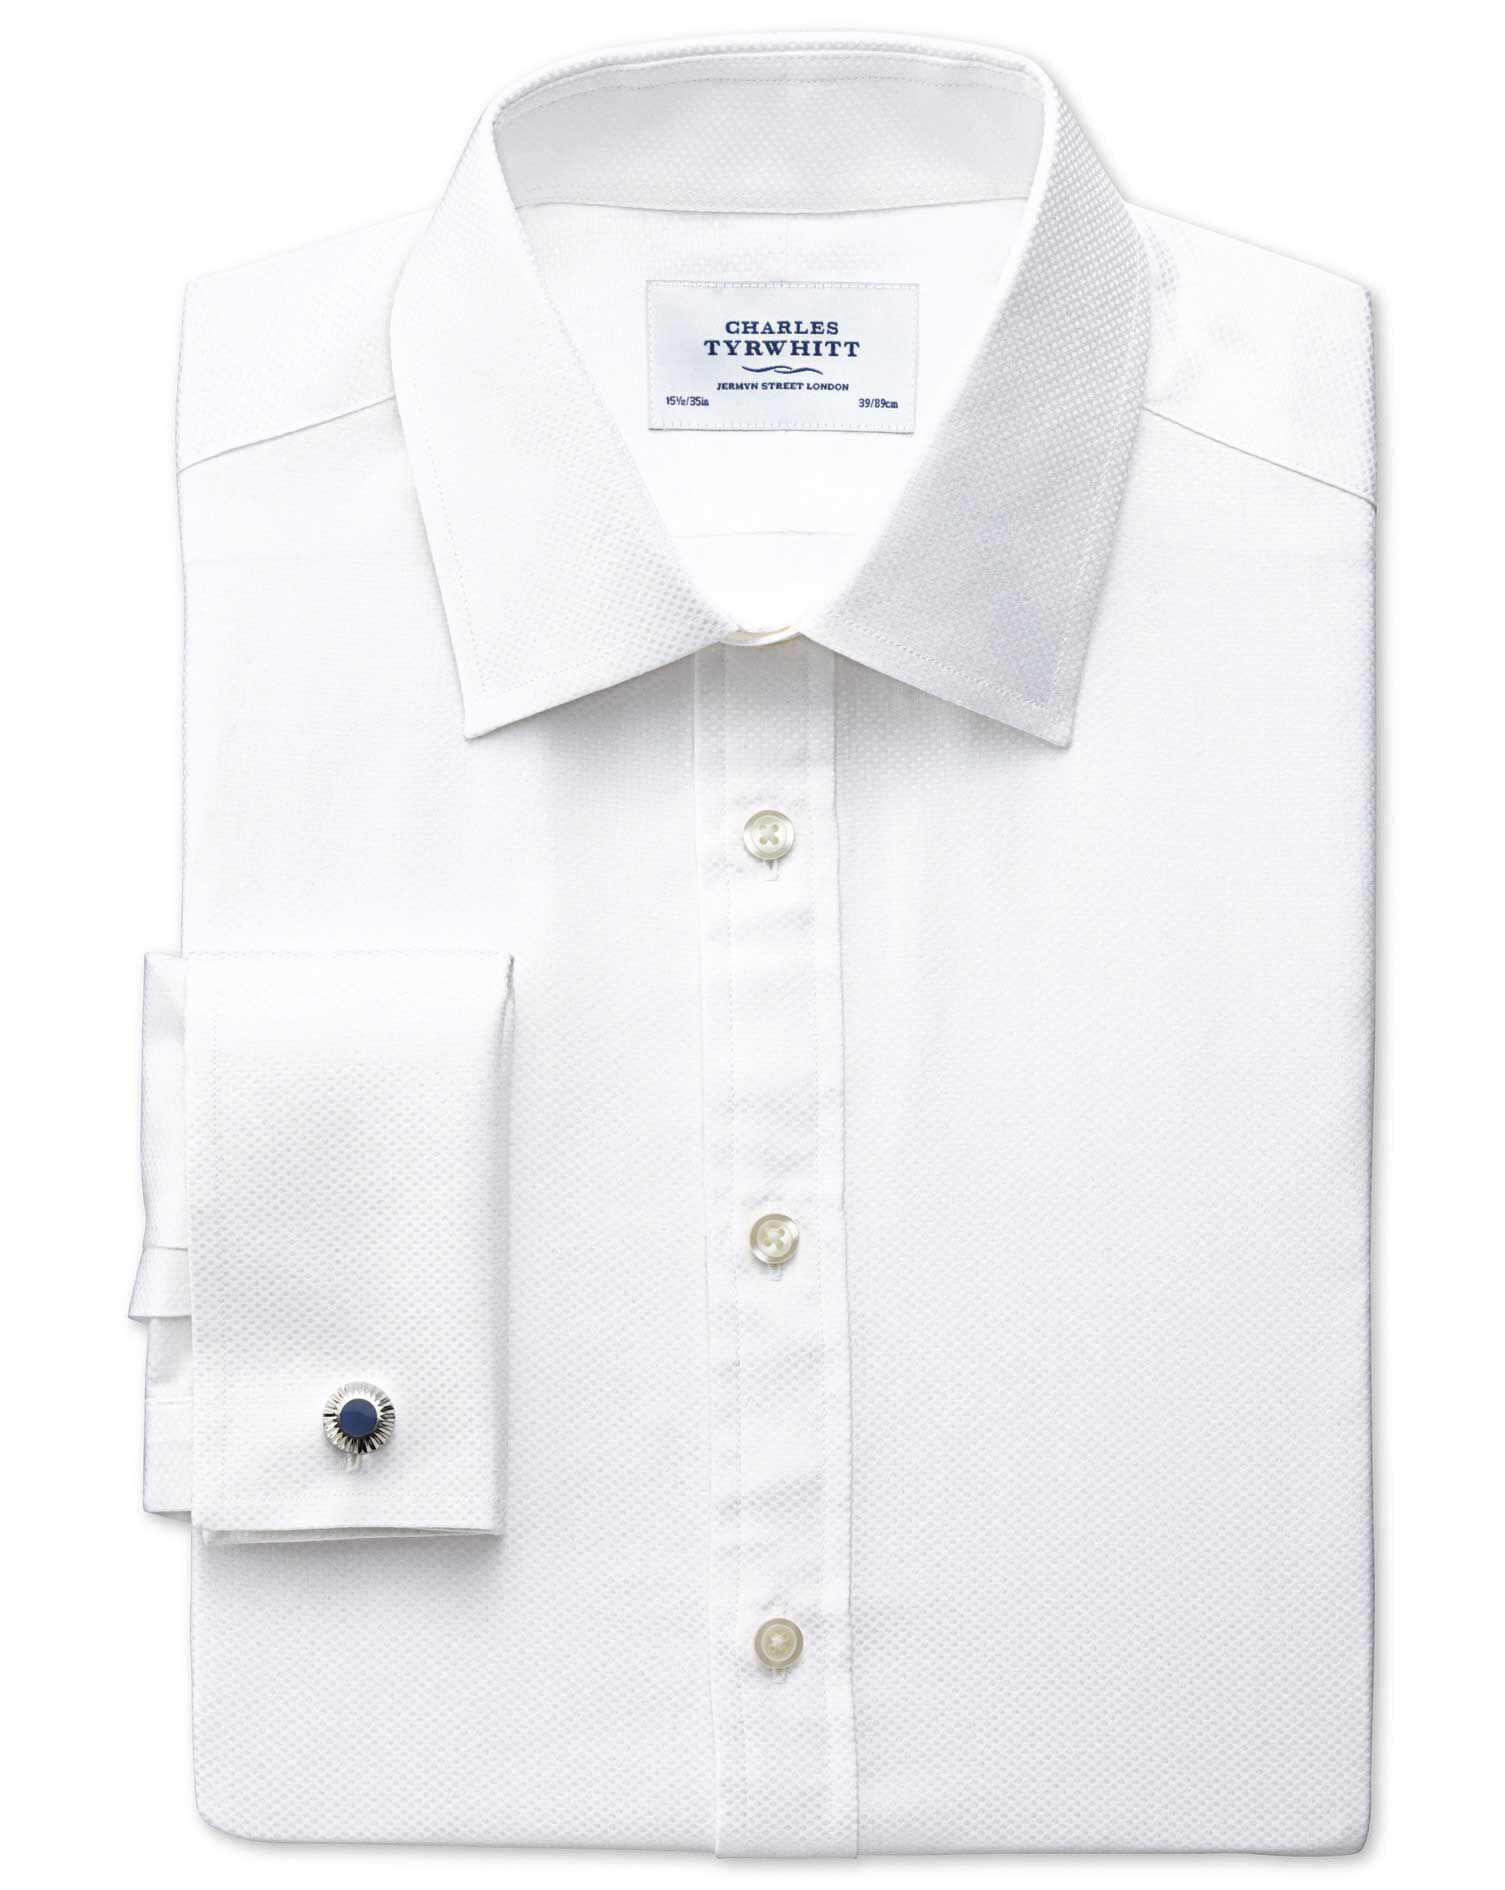 Extra Slim Fit Pima Cotton Double-Faced White Formal Shirt Double Cuff Size 15/35 by Charles Tyrwhit